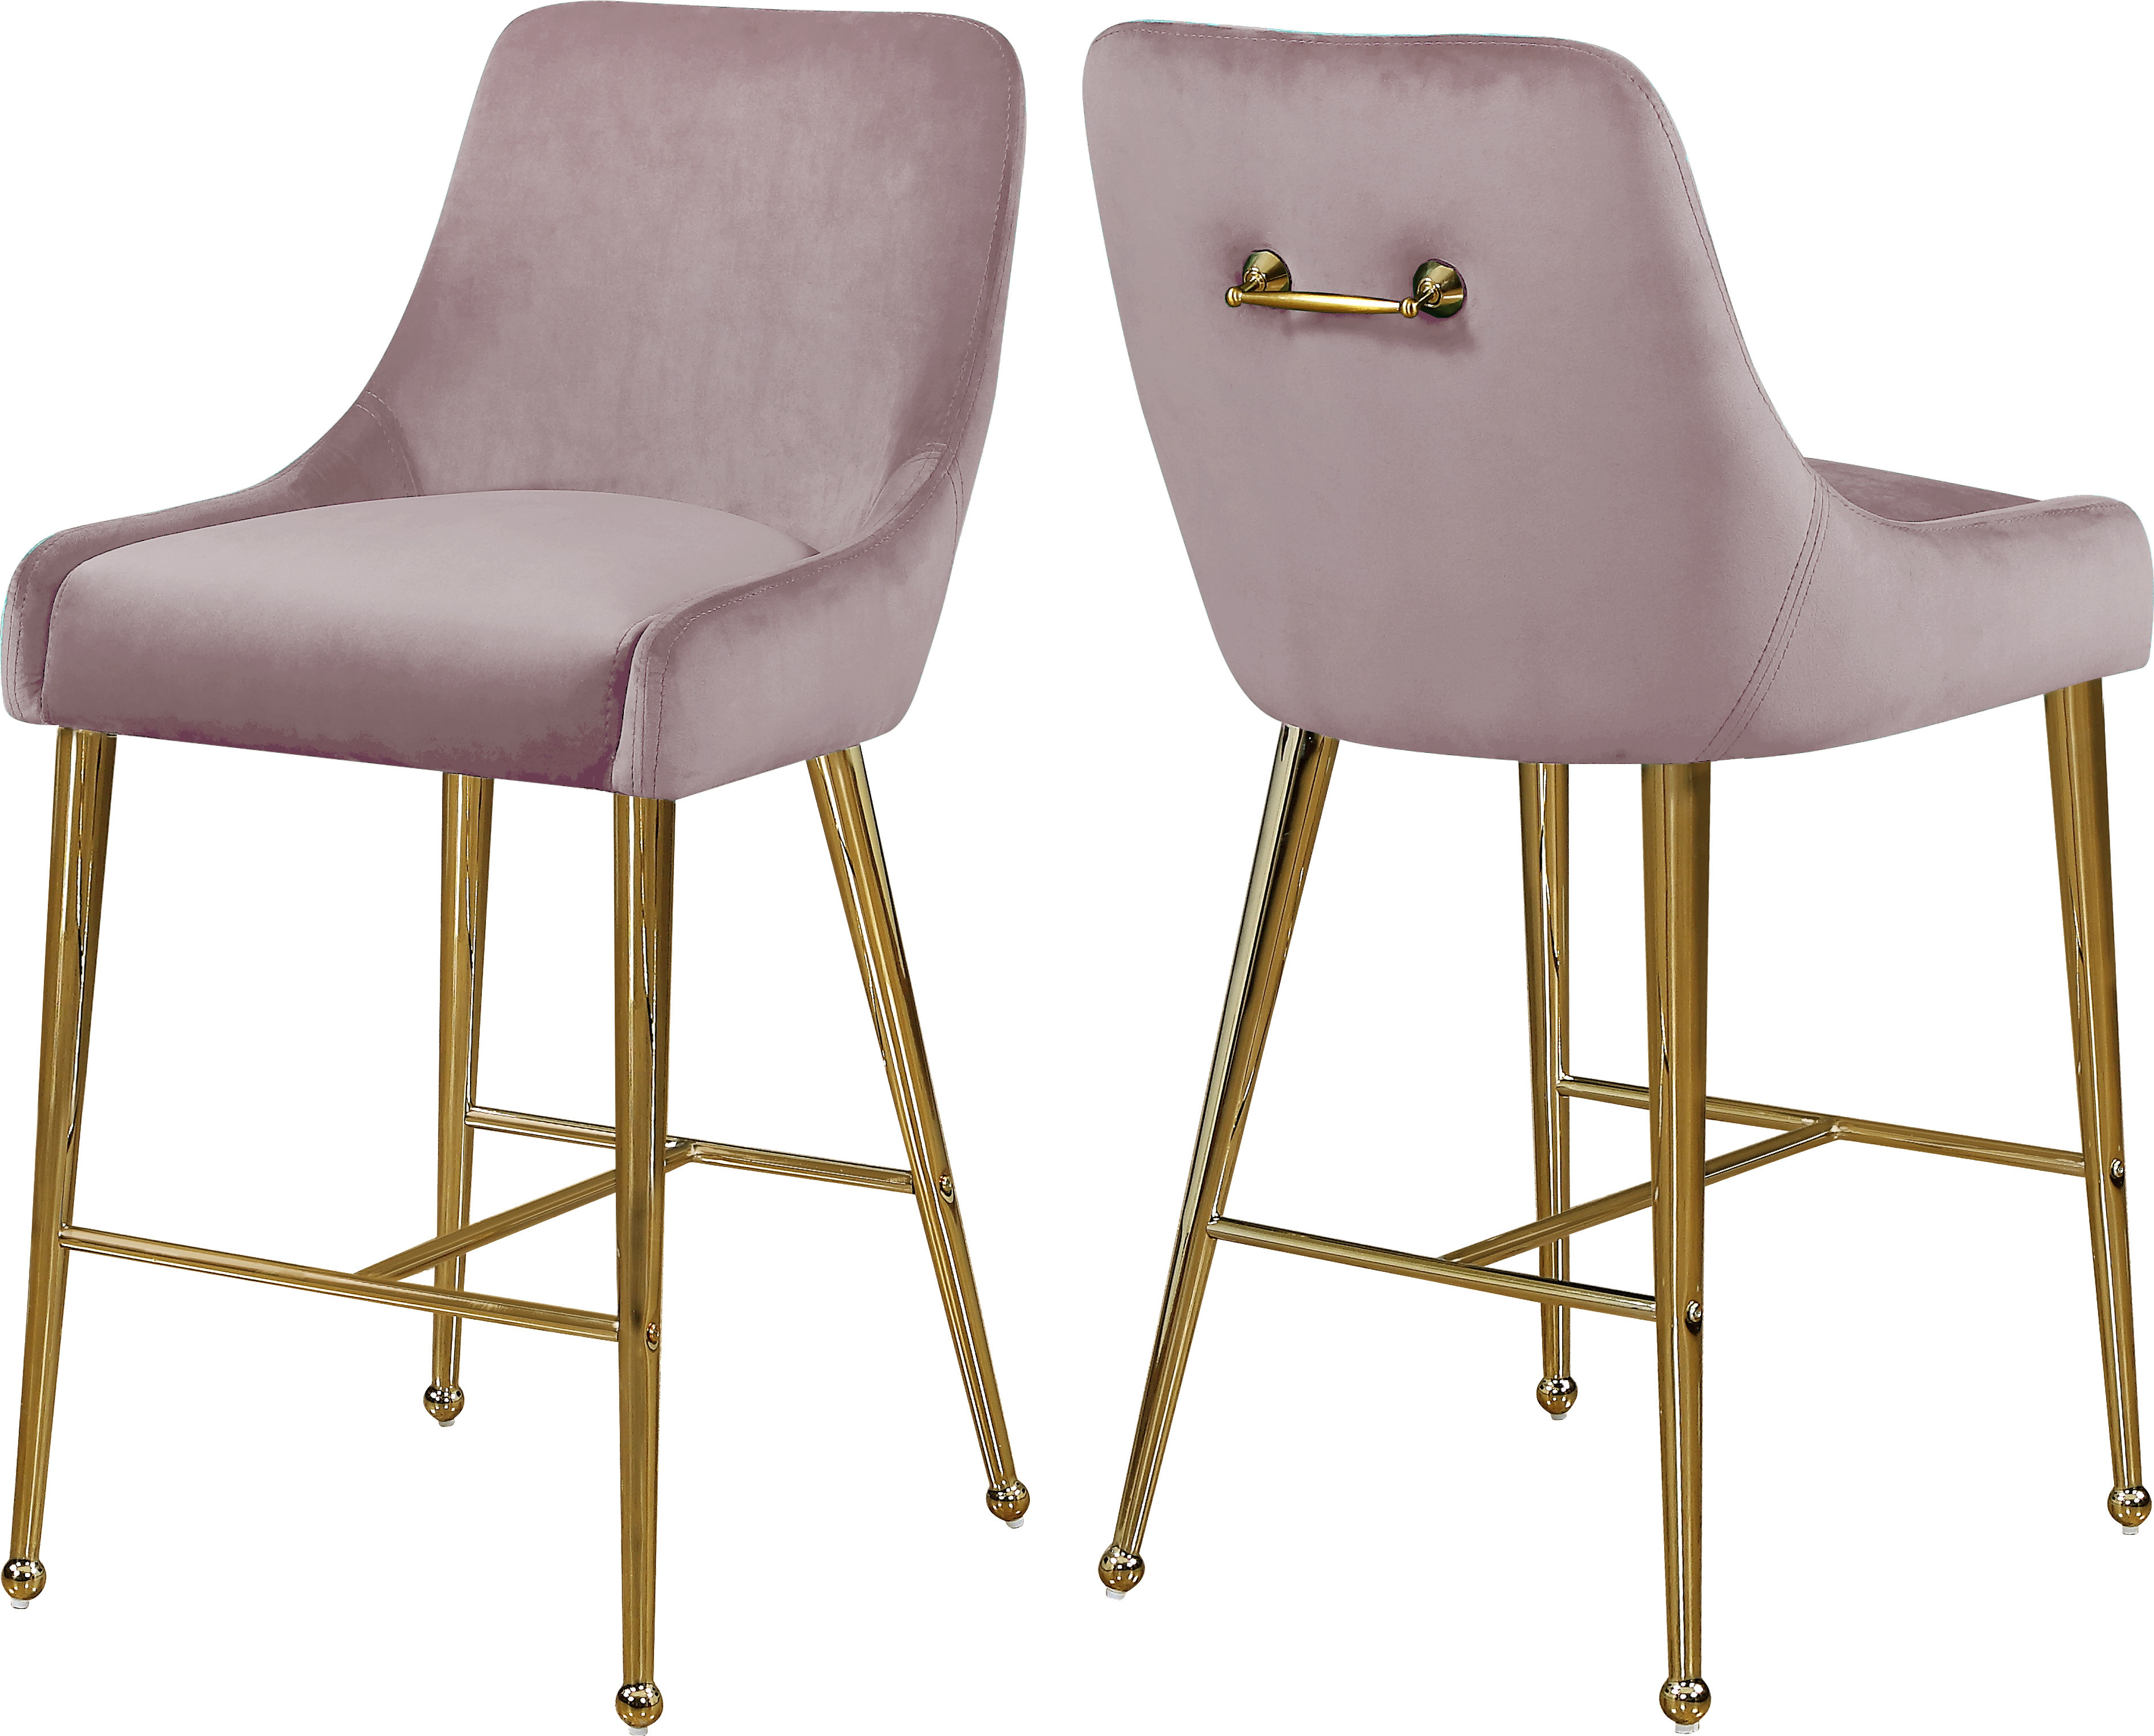 2 Meridian Furniture Owen Pink Velvet Stools The Classy Home